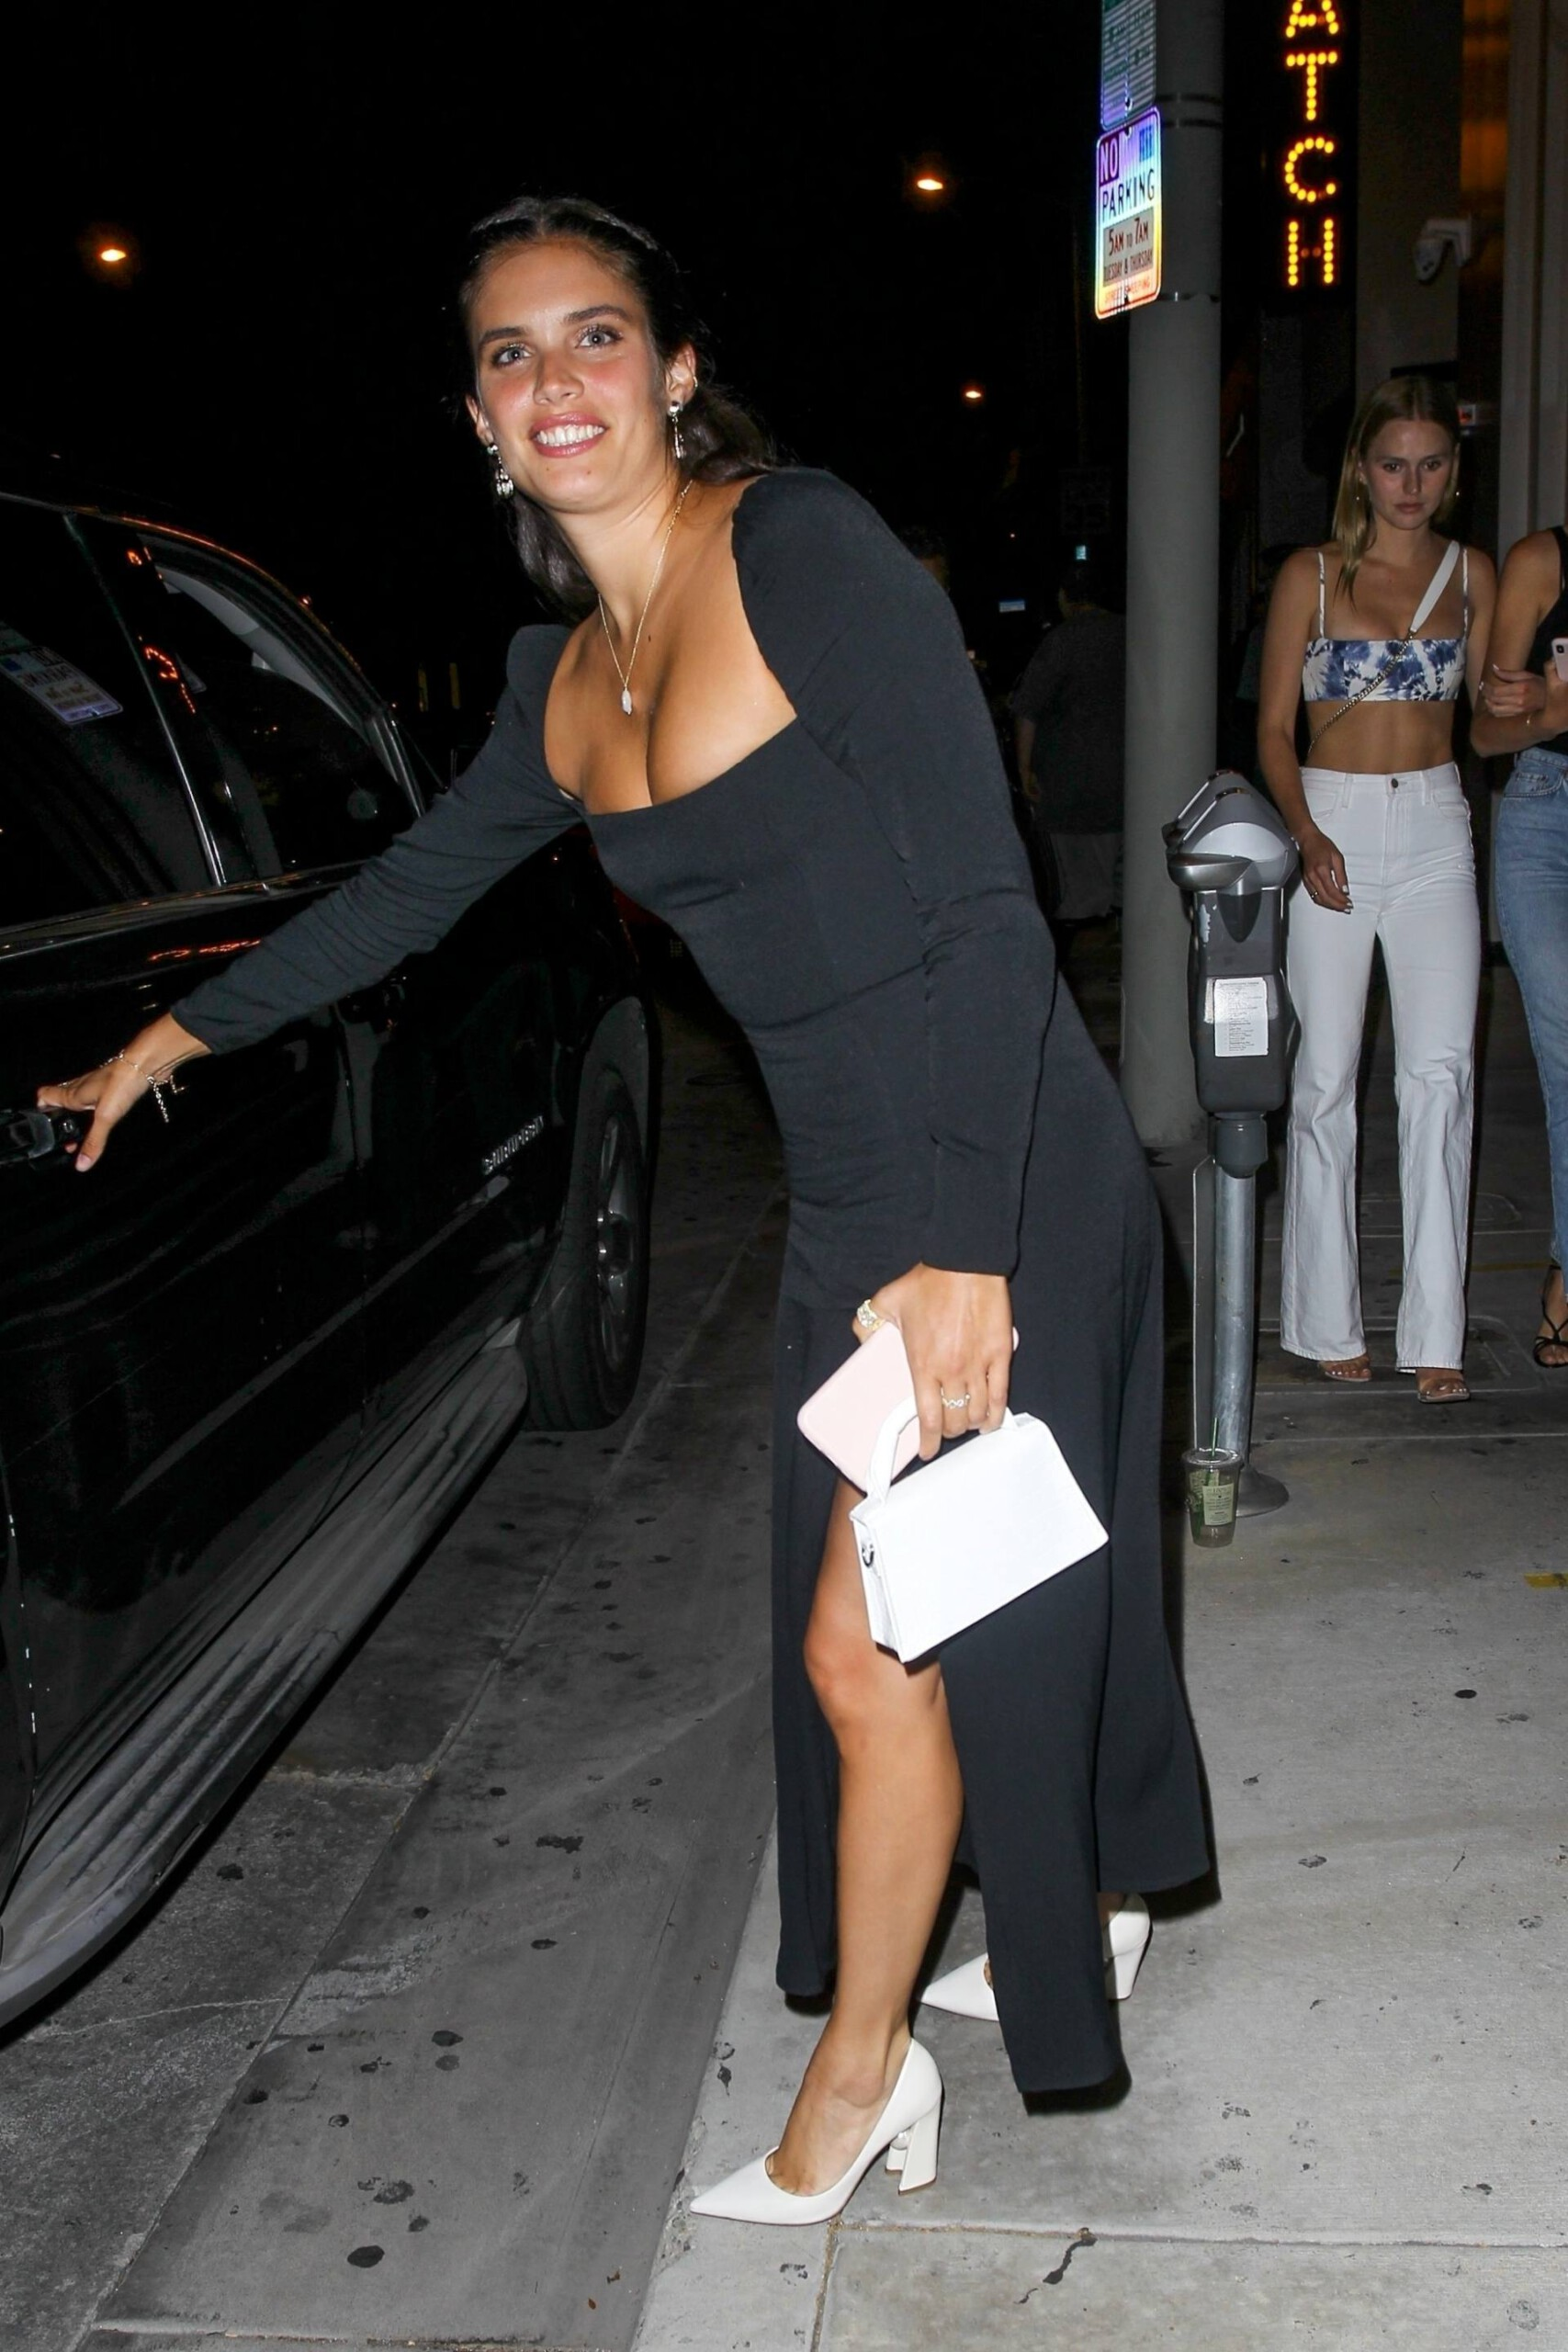 Sara Sampaio – Beautiful In Sexy Black Dress At Catch Restaurant In West Hollywood 0018